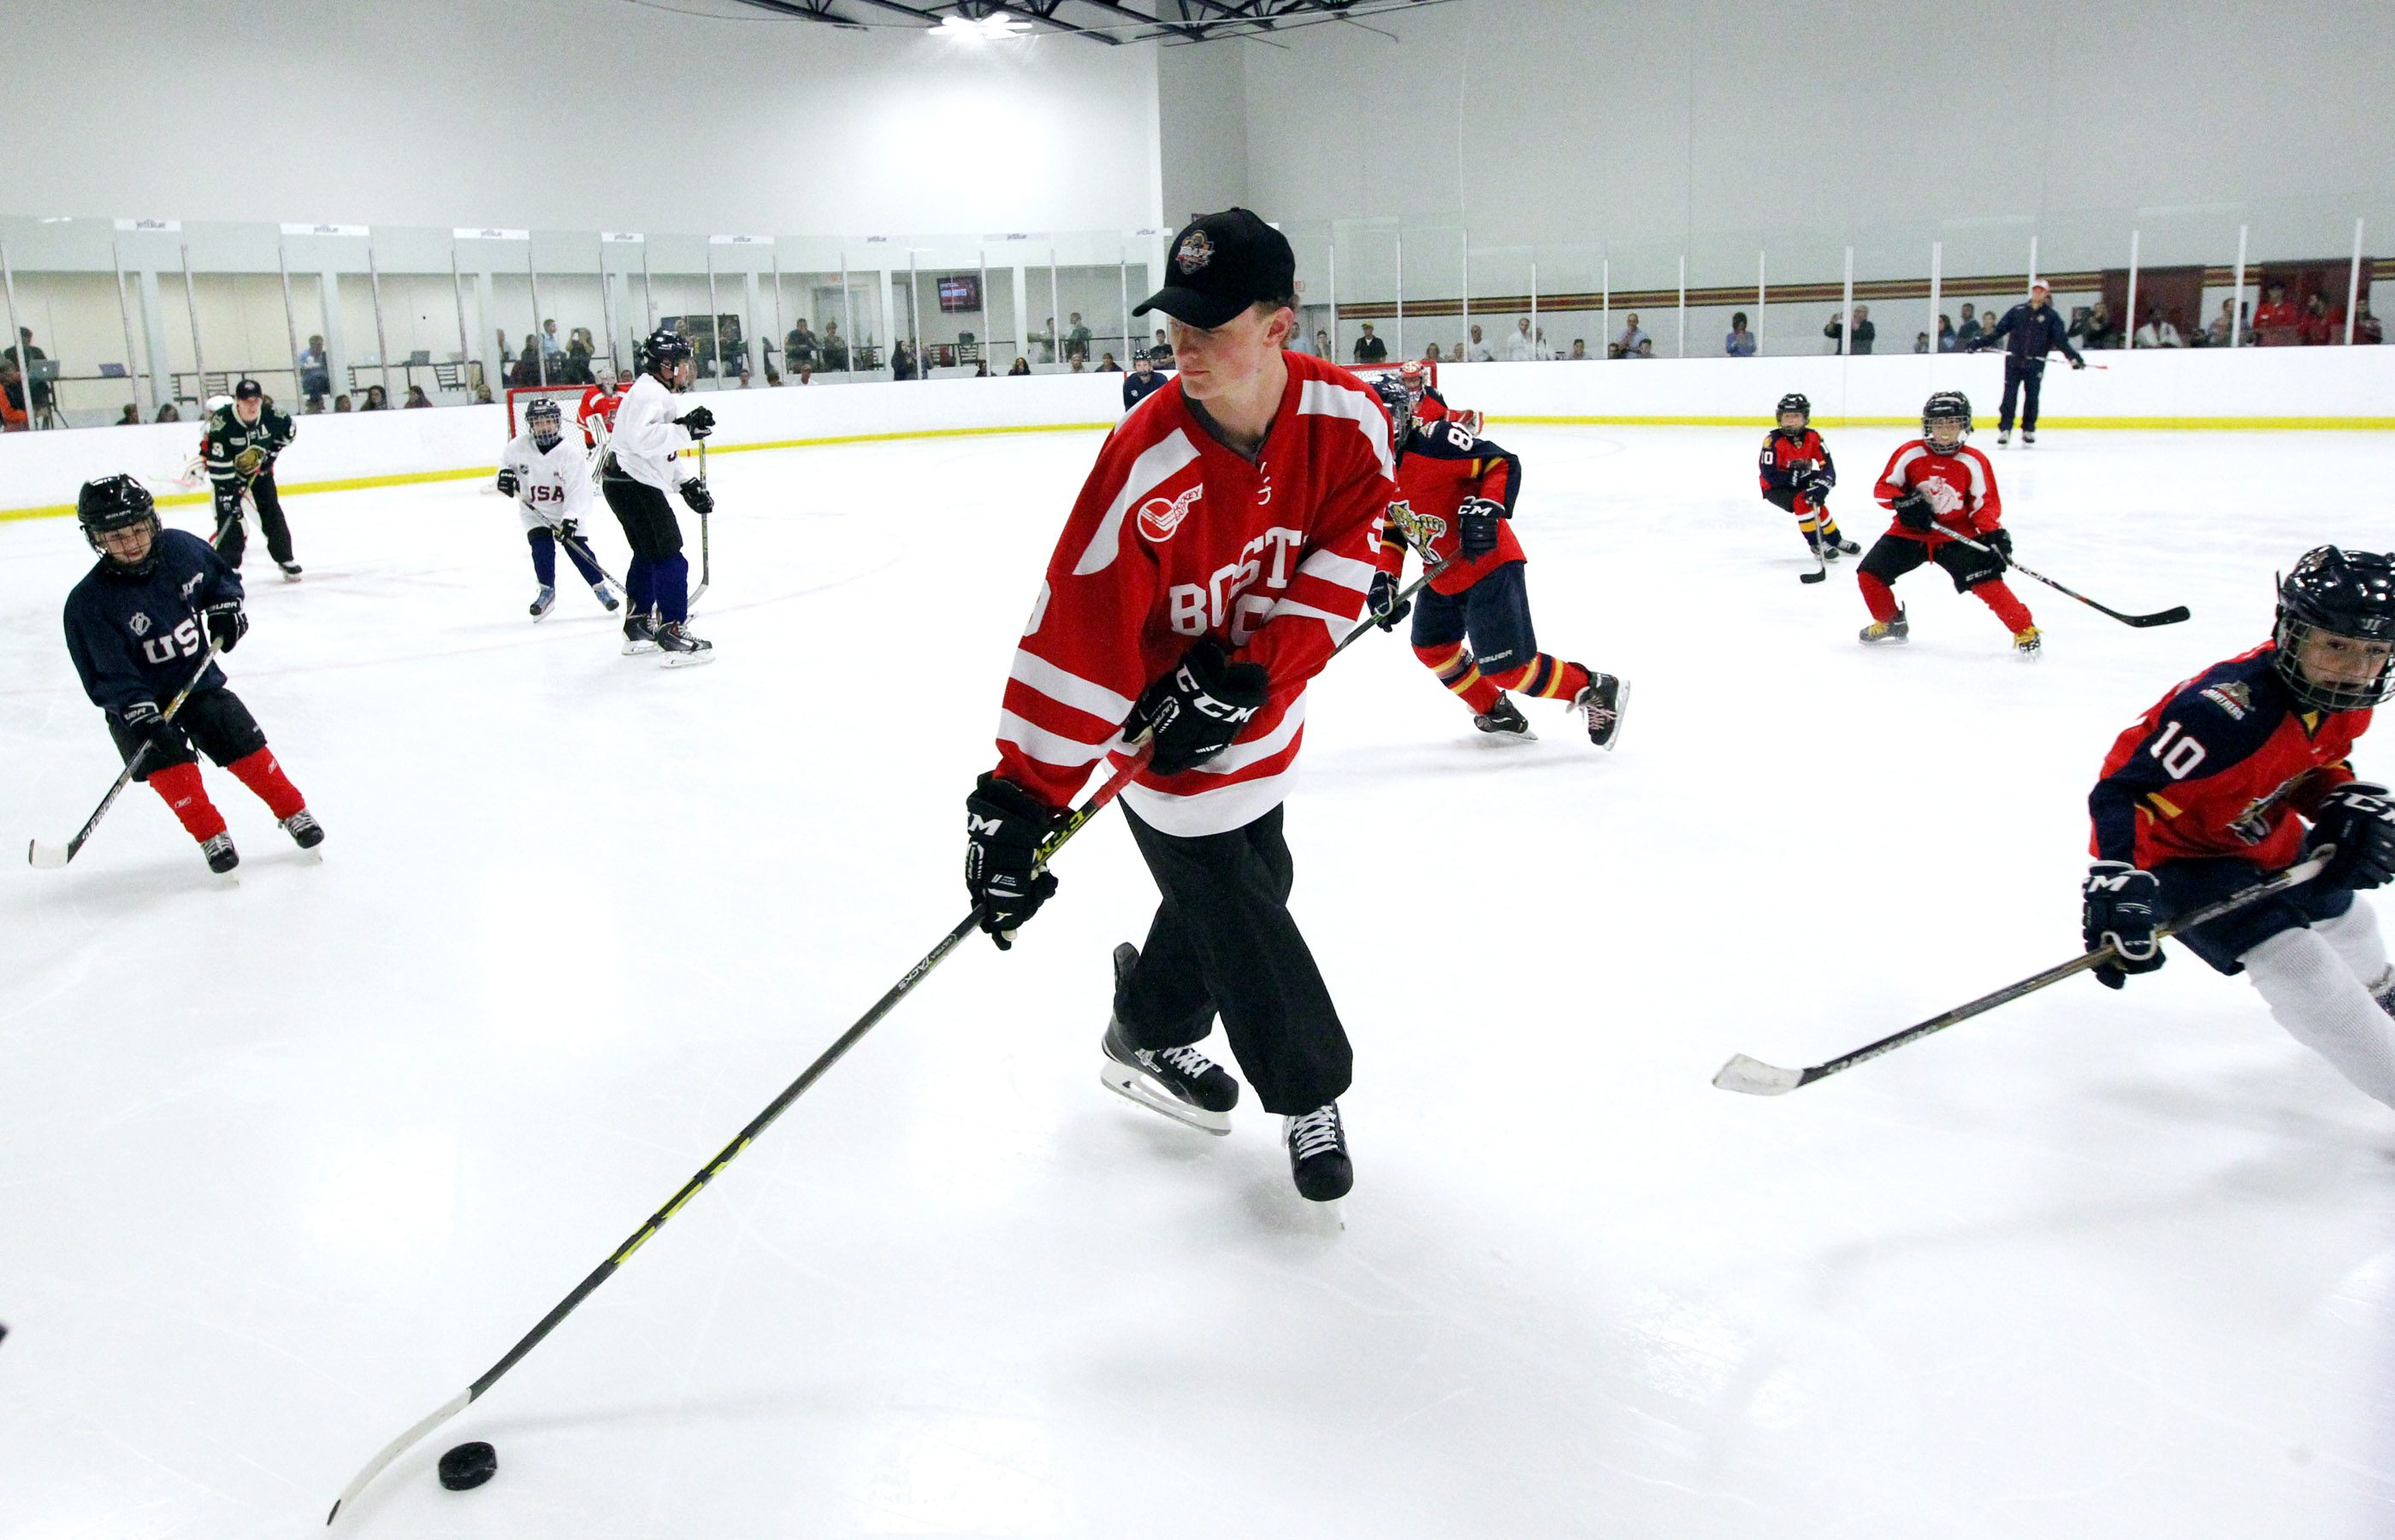 Jack Eichel skates with the kids at the NHLTop Prospects Clinic in Coral Springs, Fla., on Thursday.